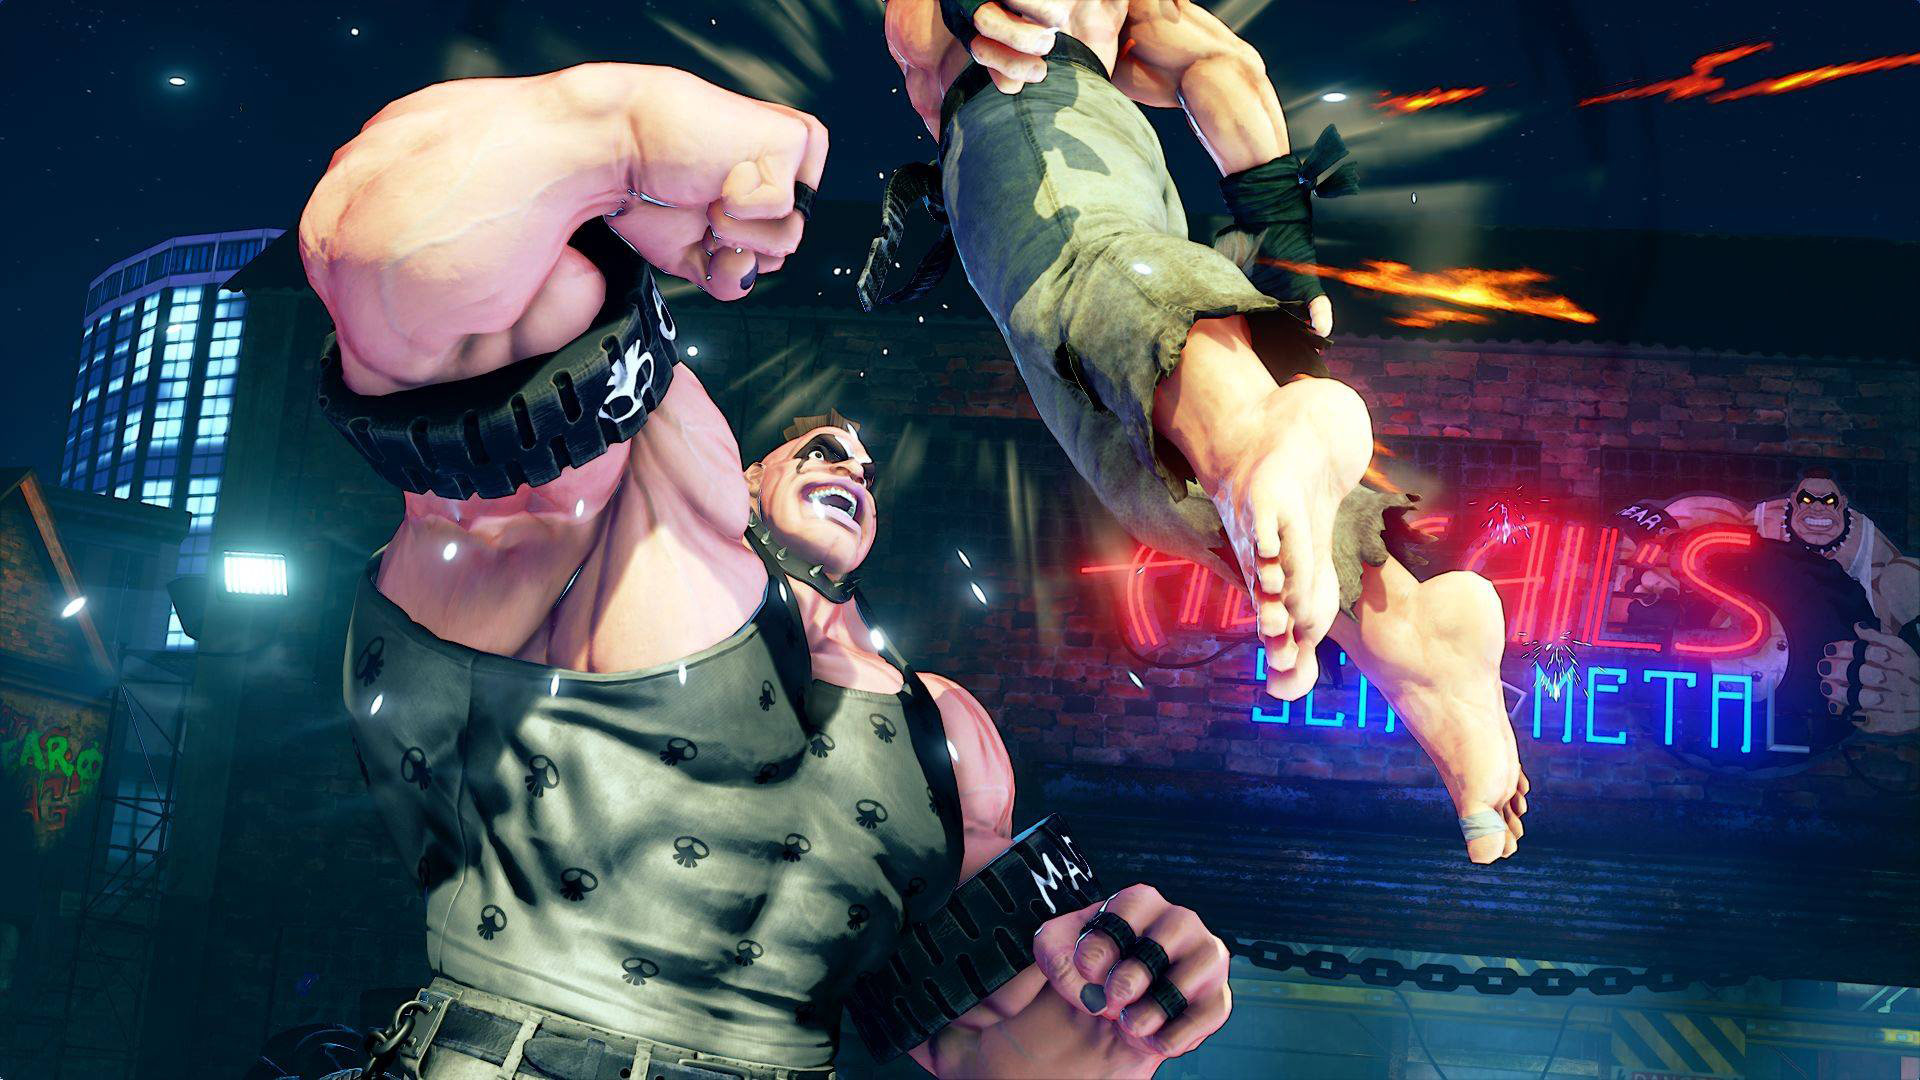 Abigail Street Fighter 5 13 out of 13 image gallery